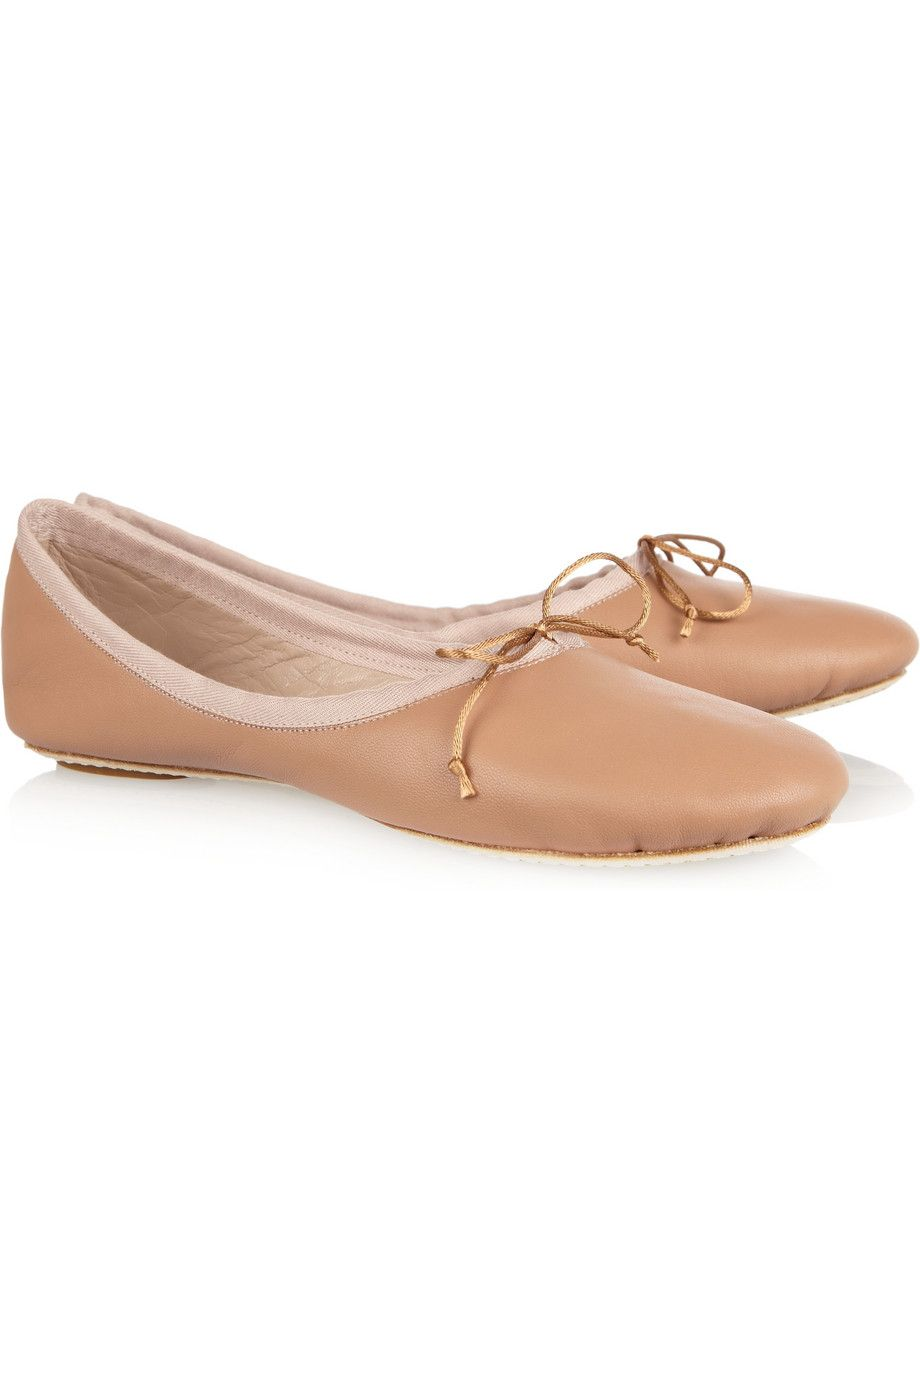 f3fd624f4 Chloé | Leather ballet flats {the most comfy flats in the world ...